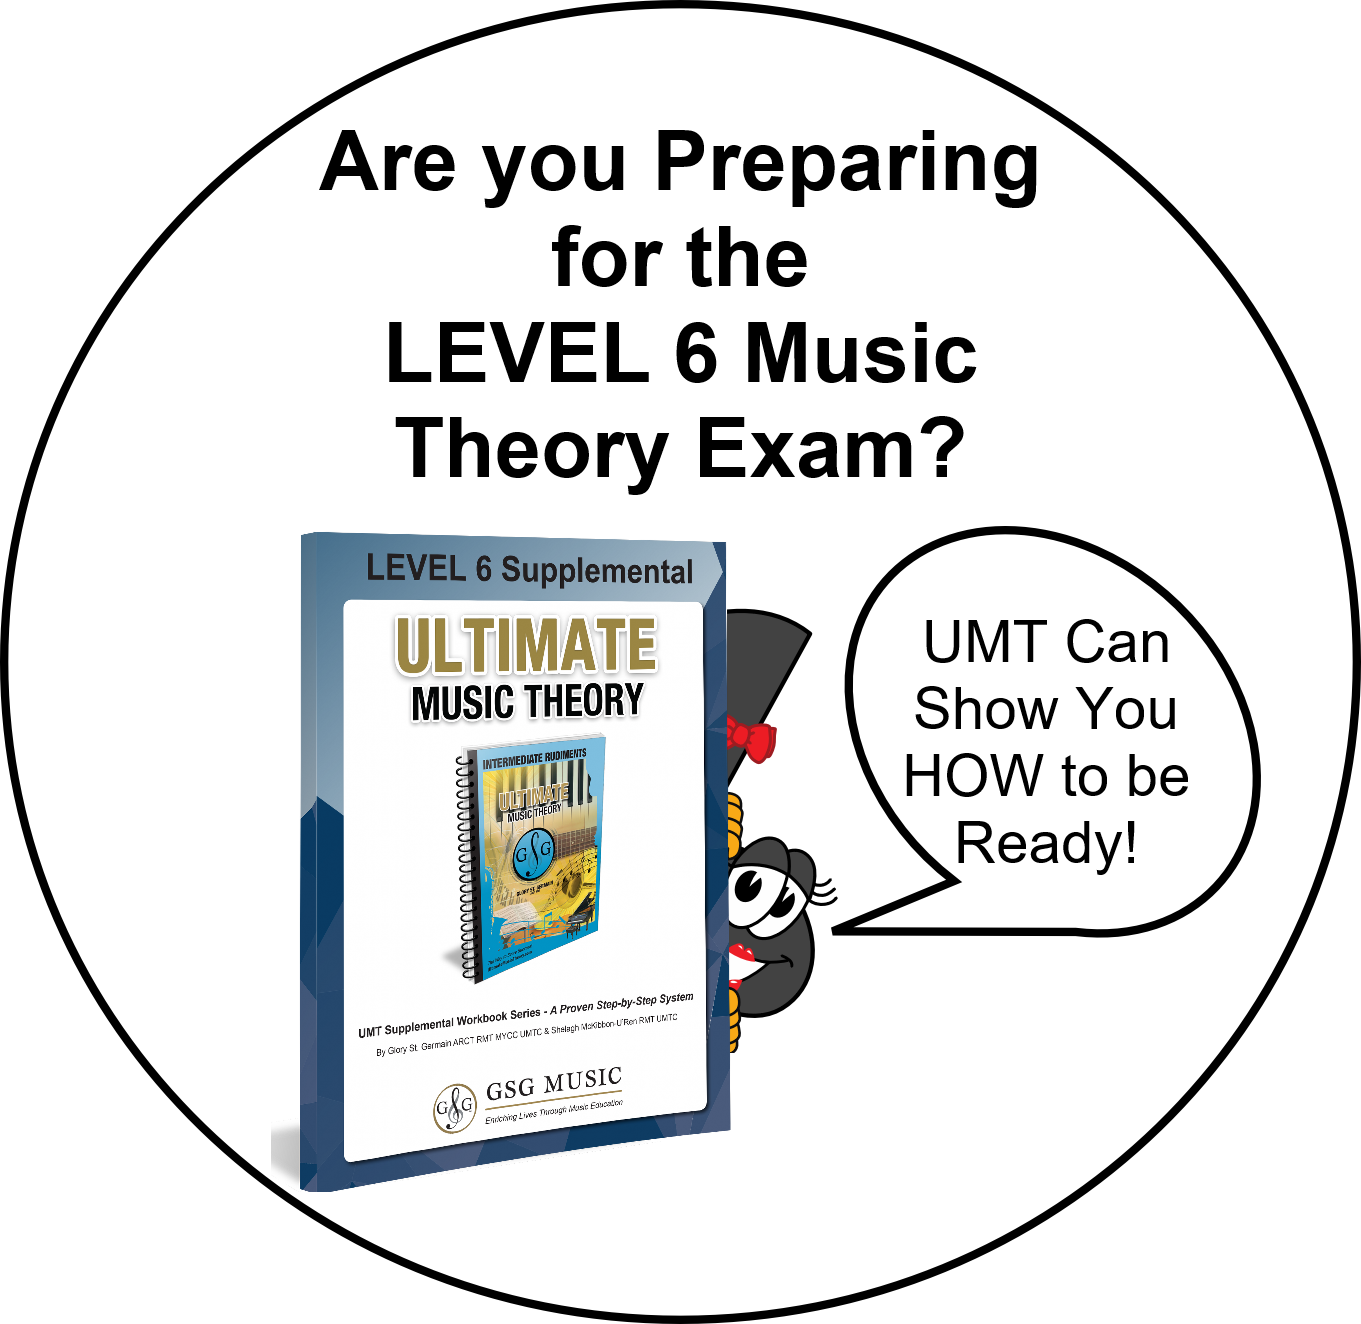 Ultimate Music Theory Level 6 Music Theory Exam